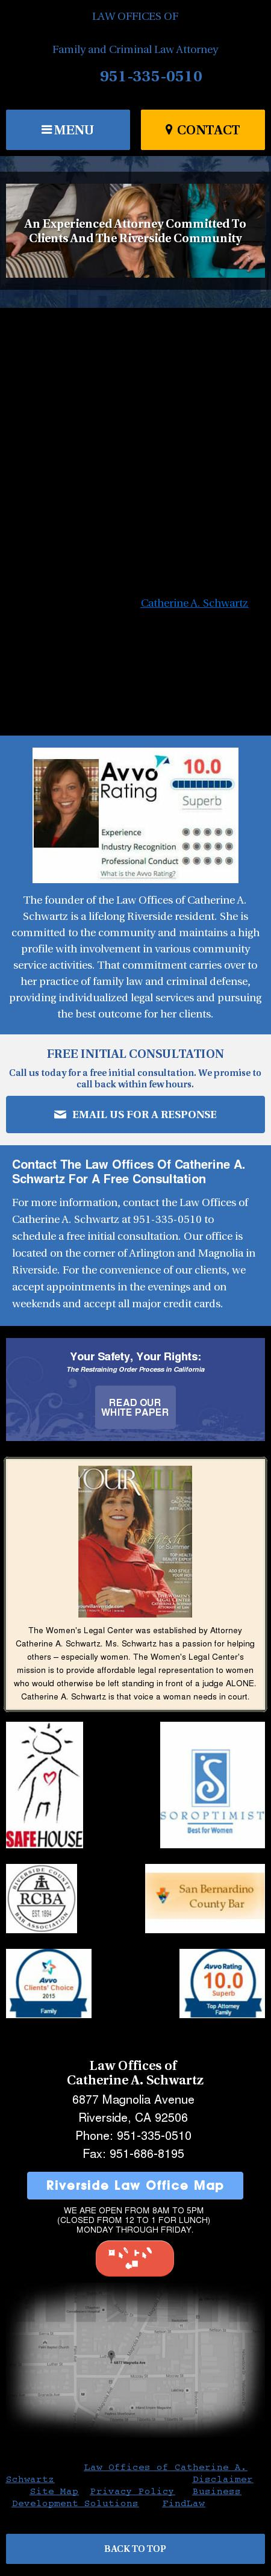 Law Offices of Catherine A. Schwartz - Riverside CA Lawyers